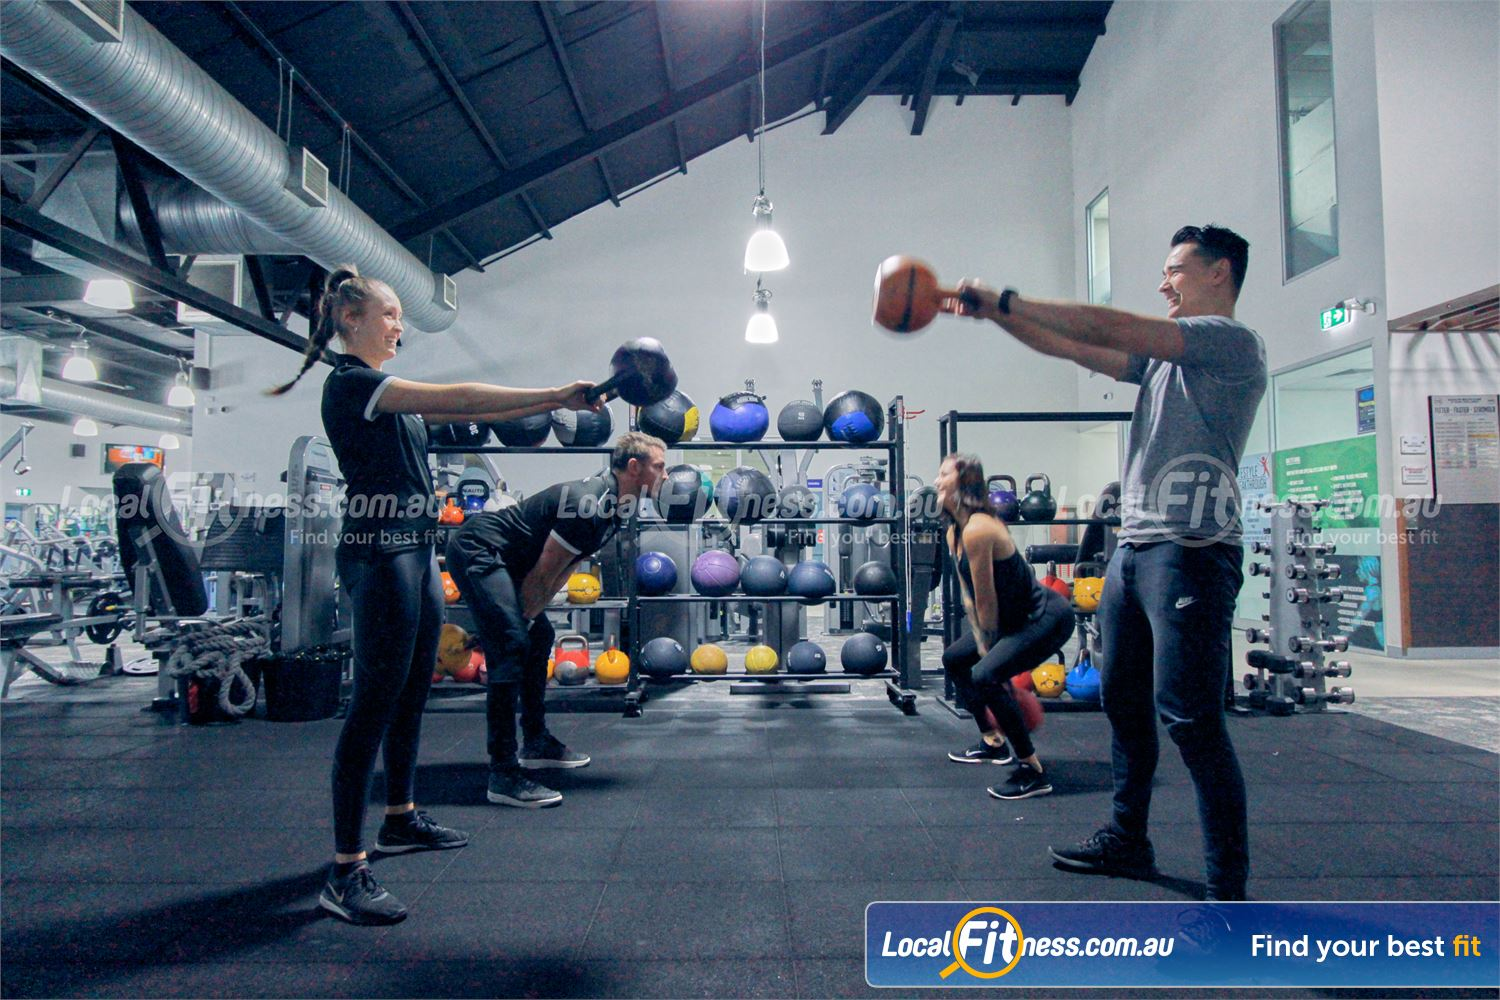 Goodlife Health Clubs Near Lilydale Get into functional training in our Mooroolbark HIIT gym.